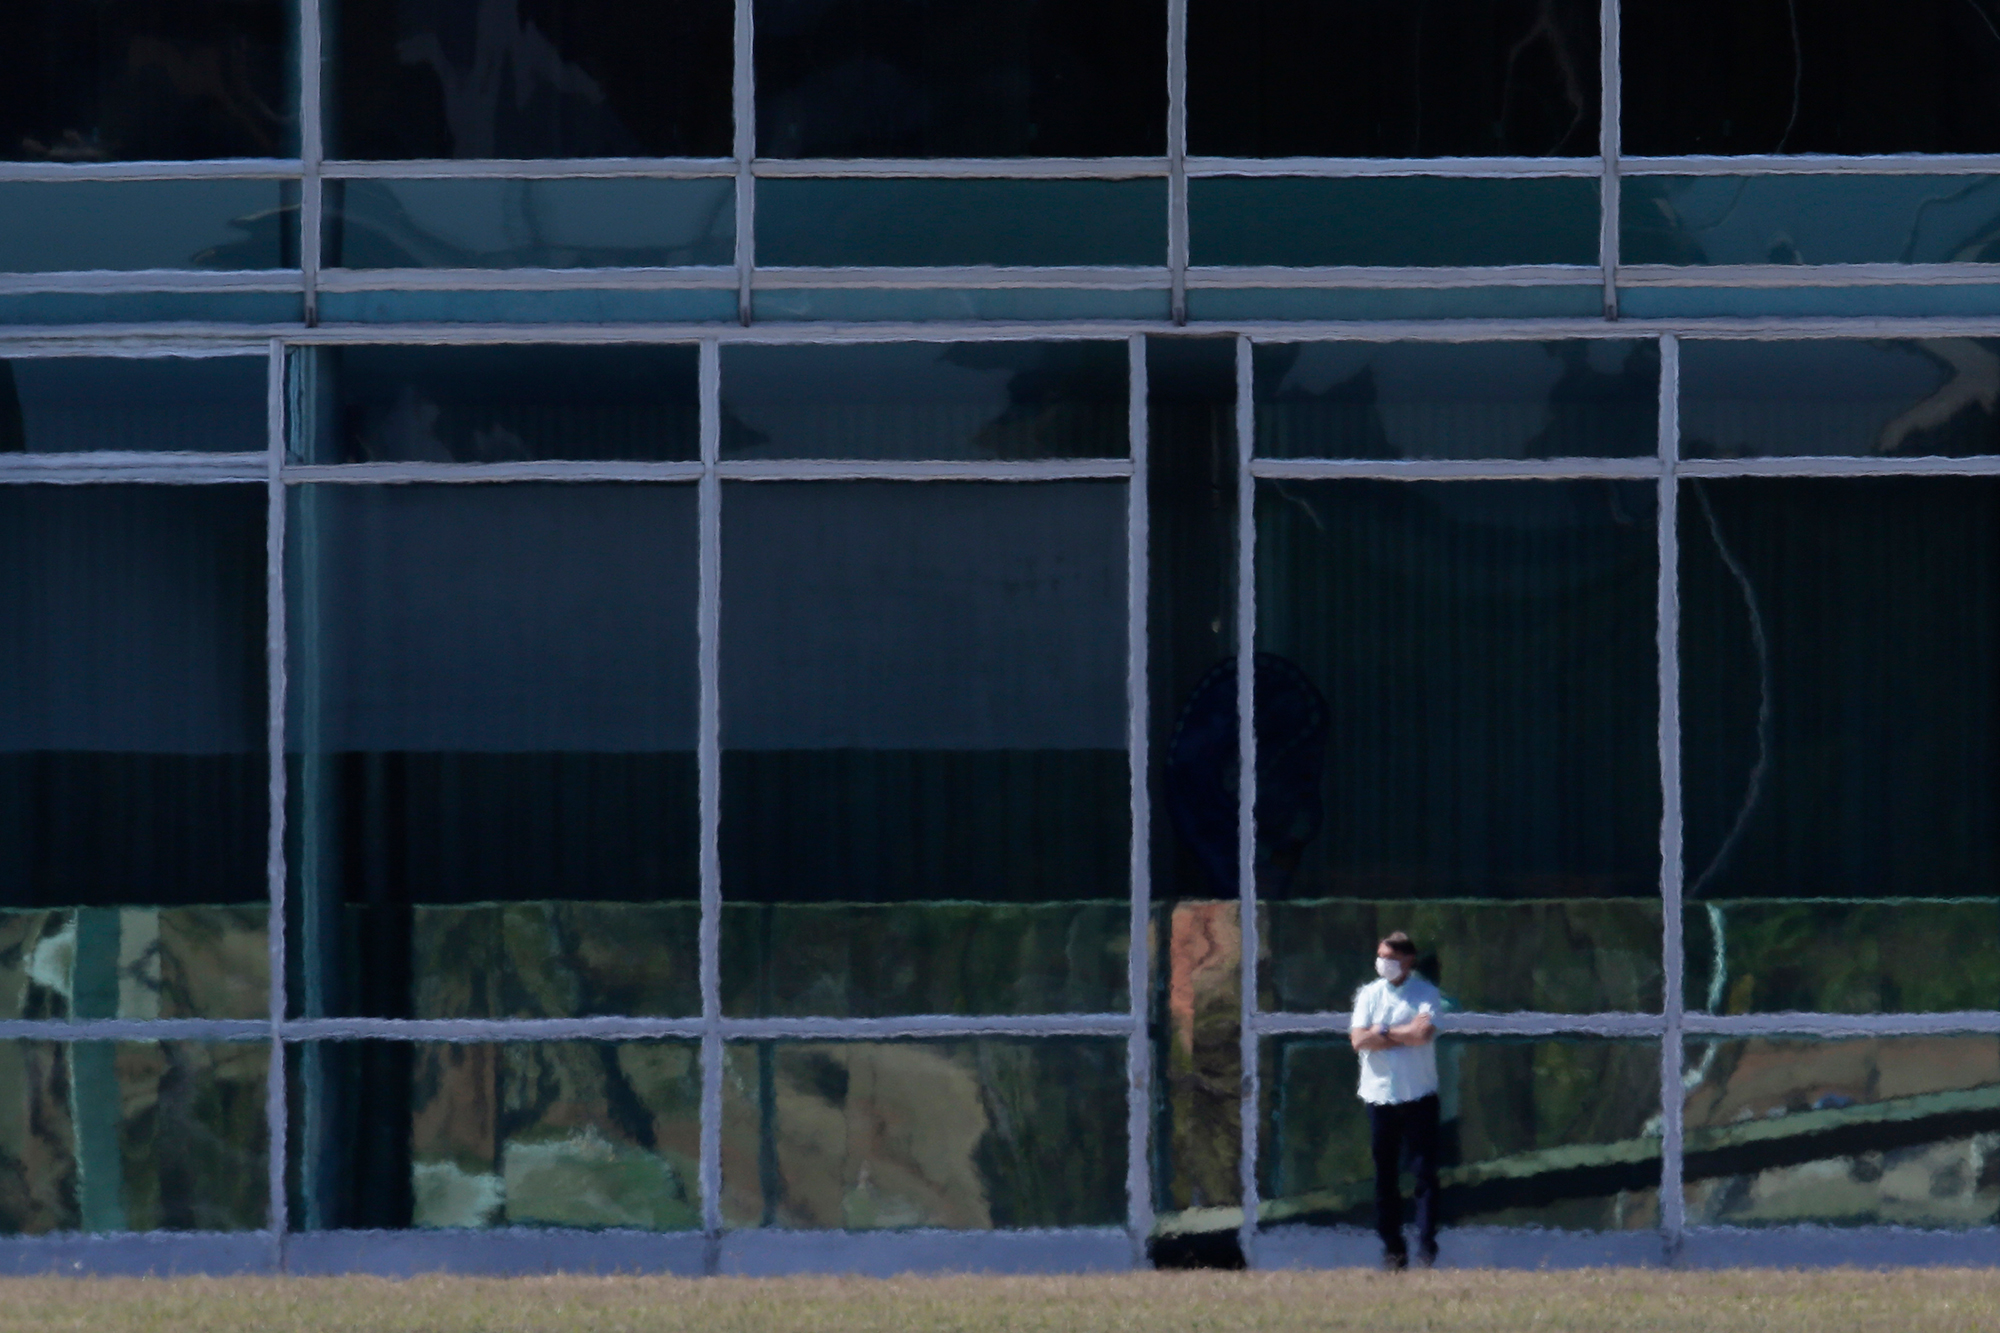 Brazil's President Jair Bolsonaro stands with his arms crossed outside the official presidential residence, Alvorada Palace, in Brasilia, Brazil, Wednesday, July 8.